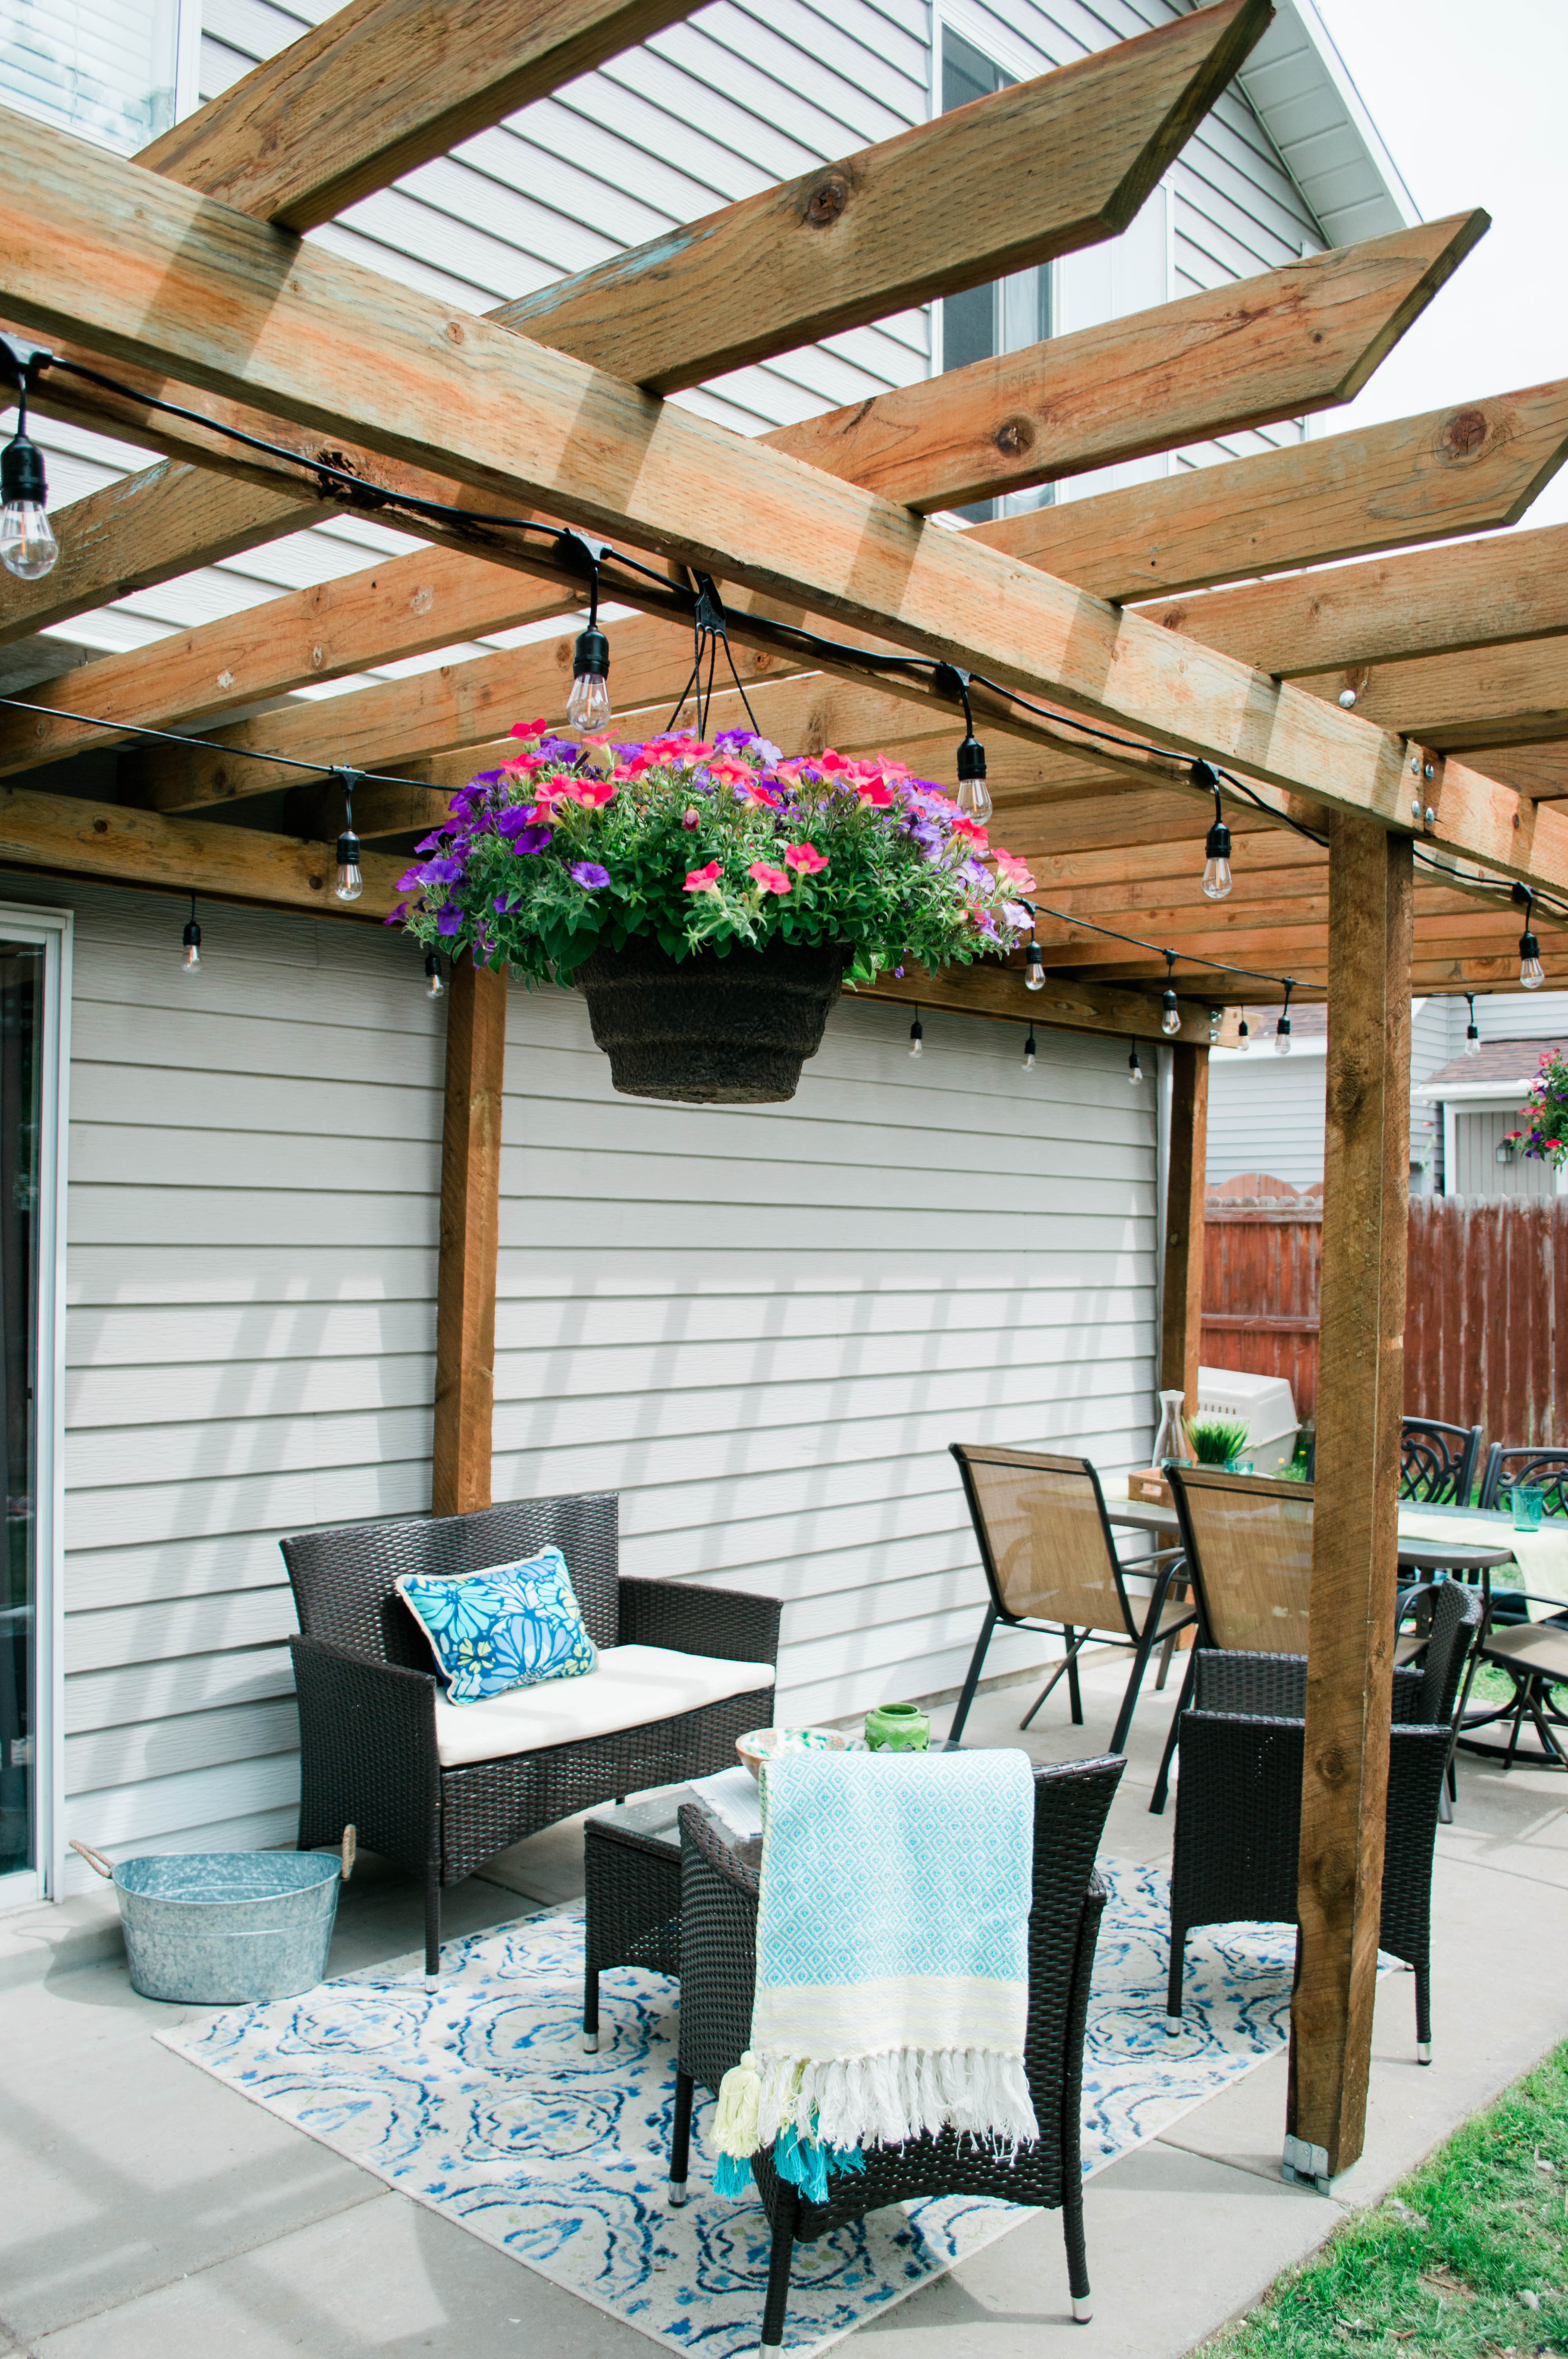 Backyard Idea on a budget - here's how lifestyle blogger Chelsie transformed her backyard under 1,000 dollars and completed a DIY pergola // Hey There, Chelsie